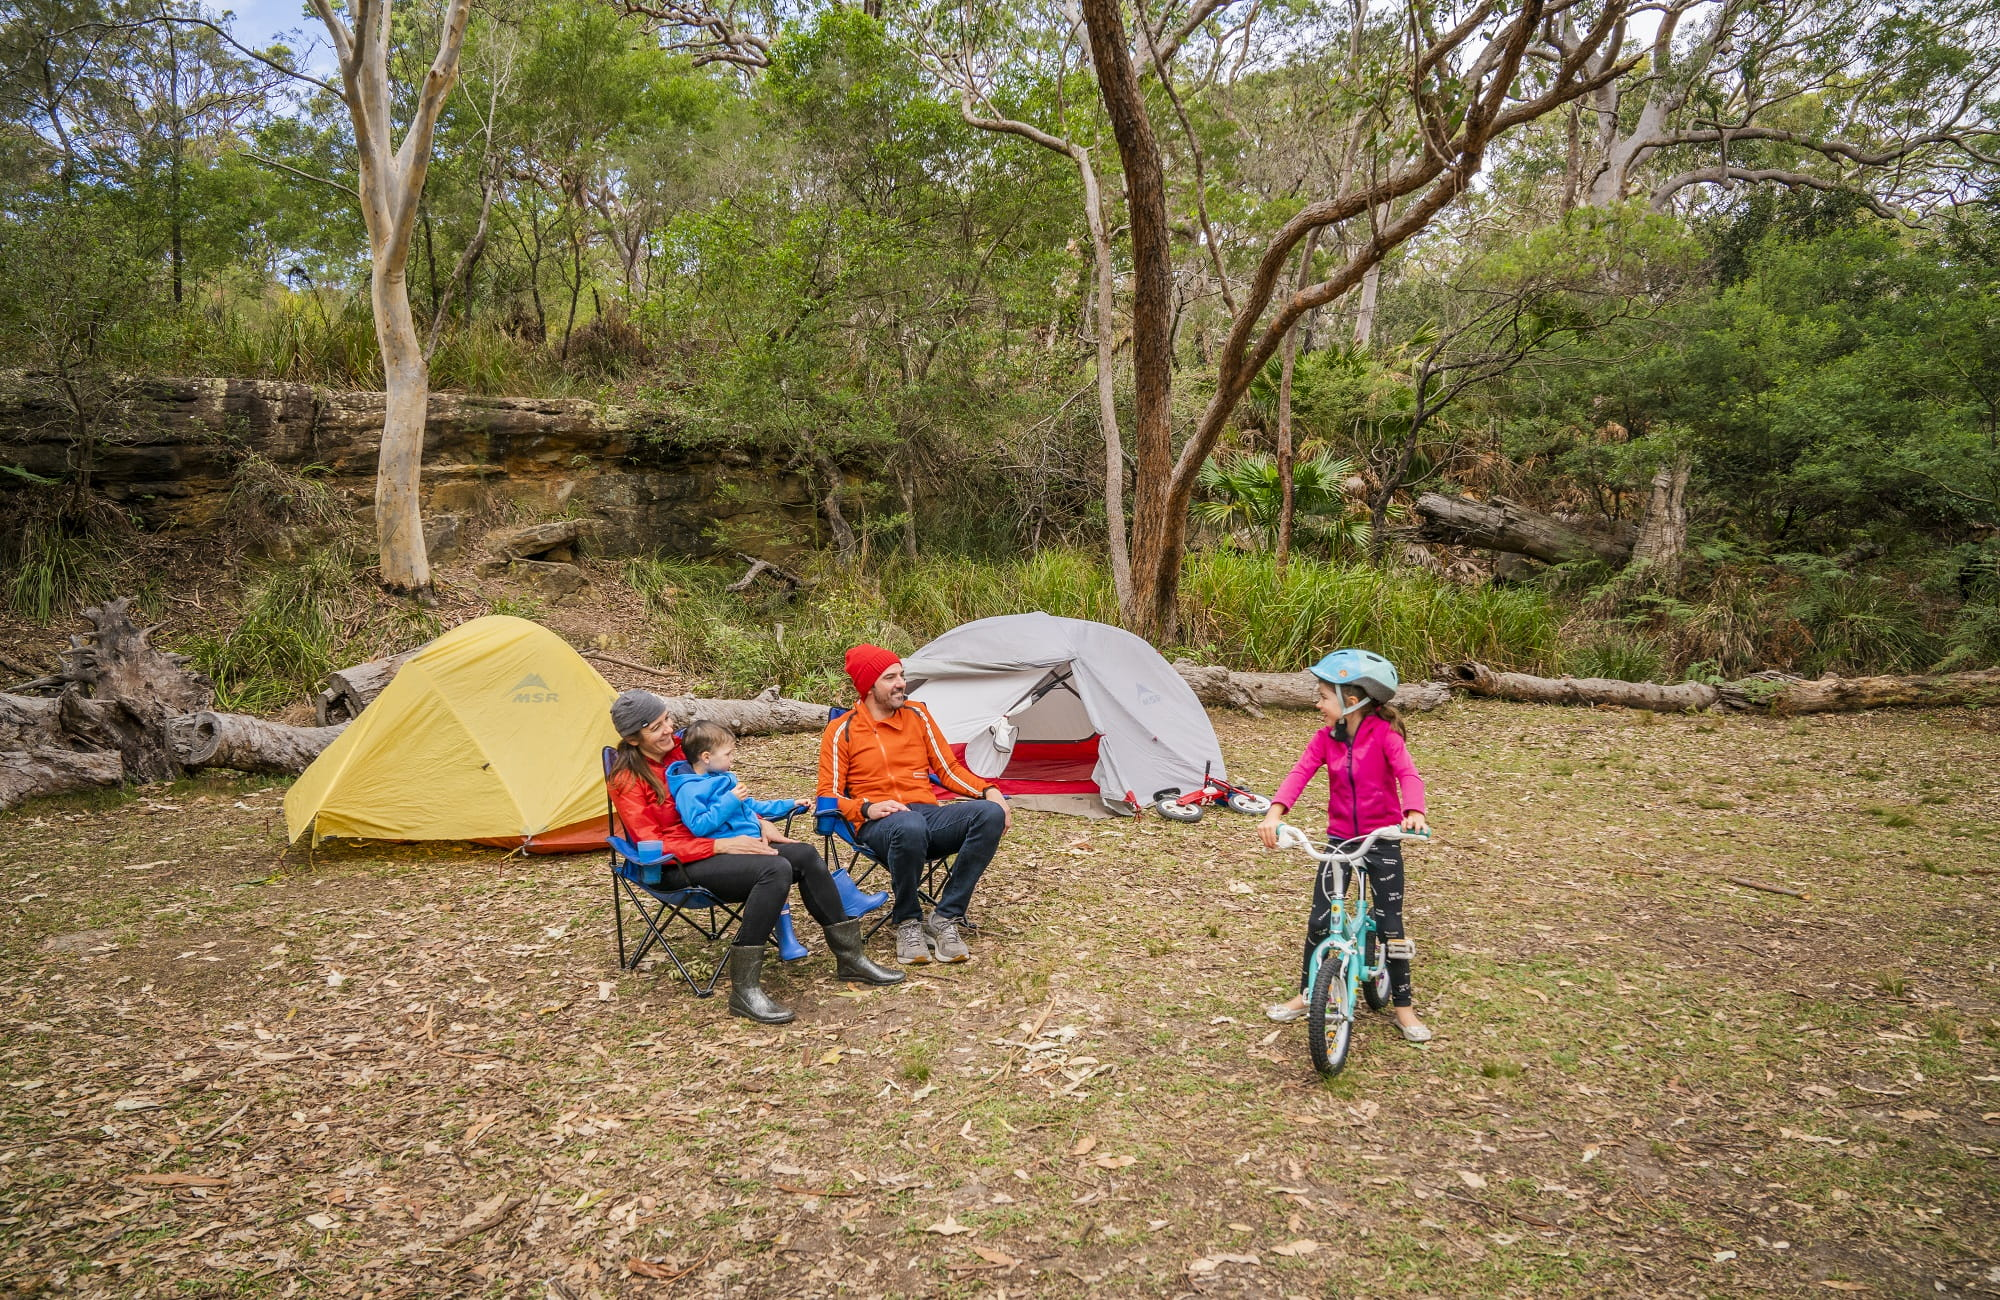 Bonnie Vale campground, Royal National Park. Photo: John Spencer/OEH